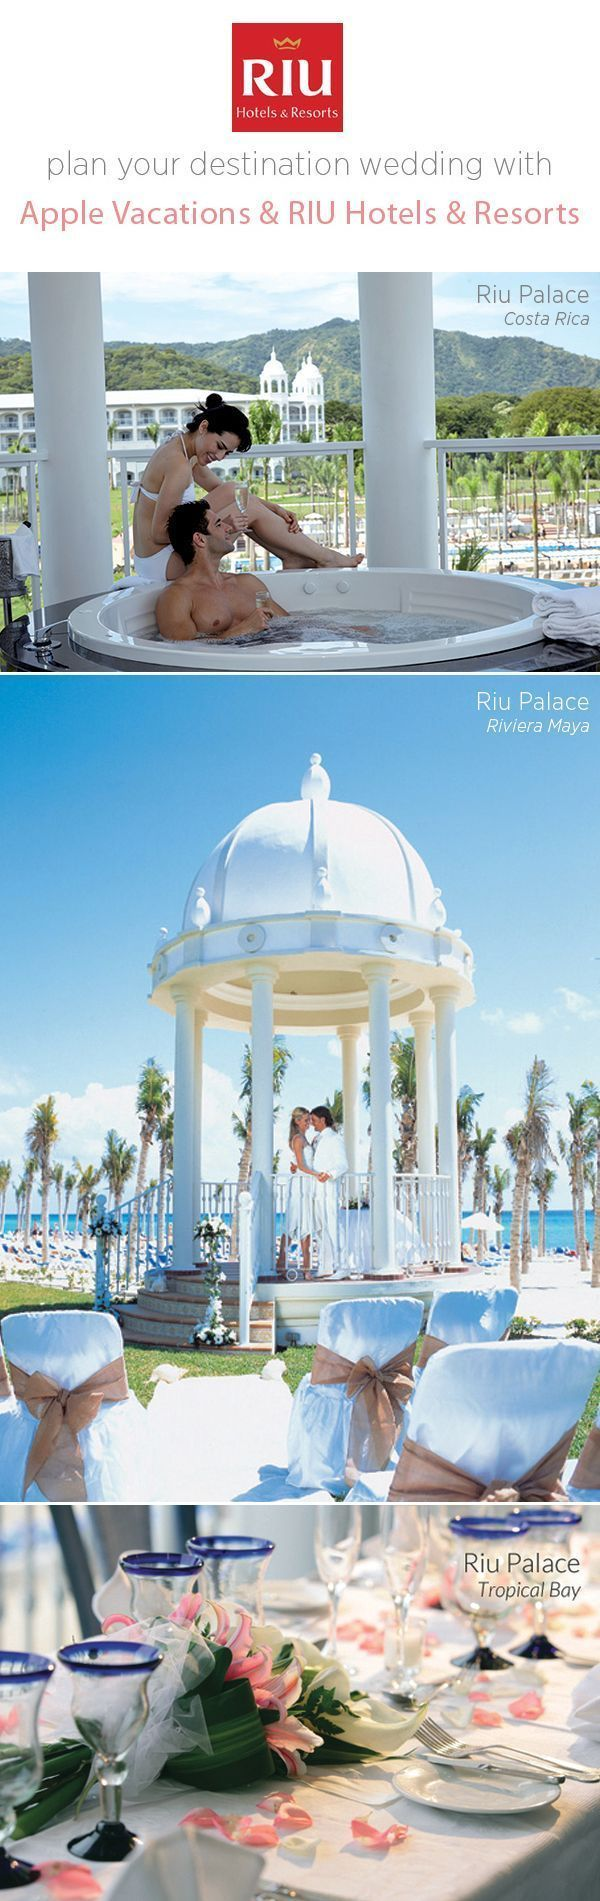 riu-resorts